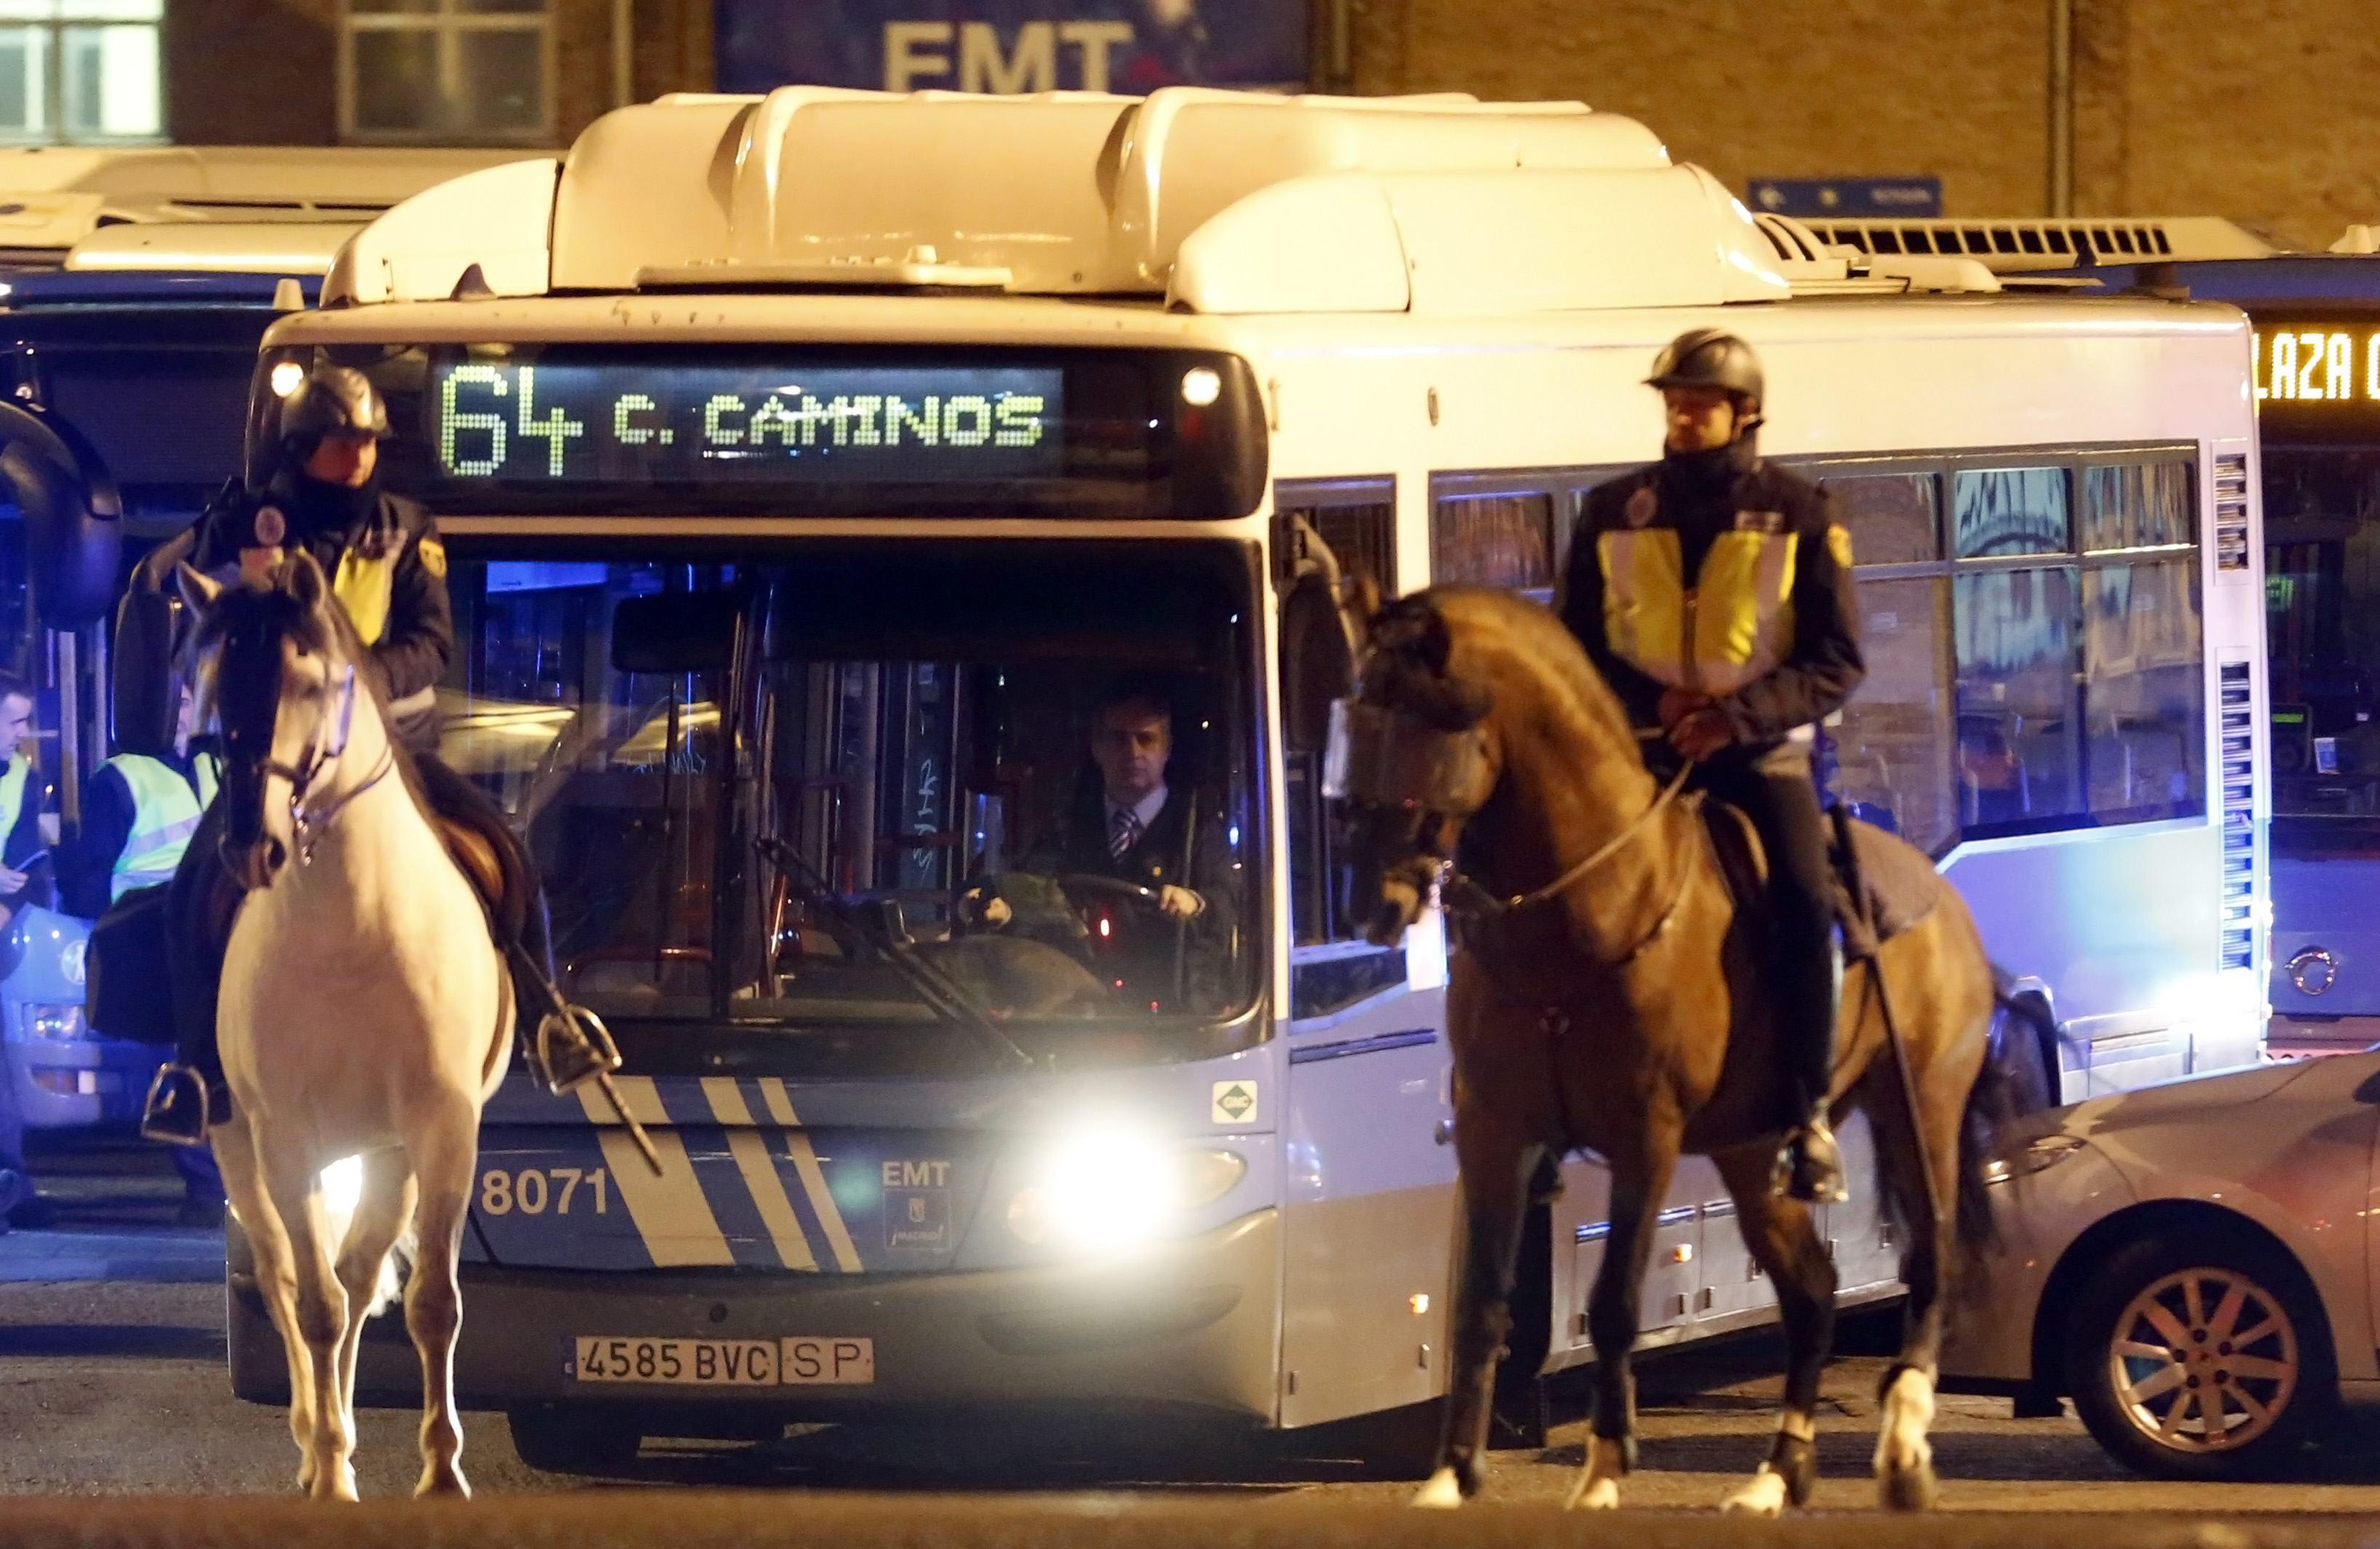 Mounted police escorted a public bus along its route.